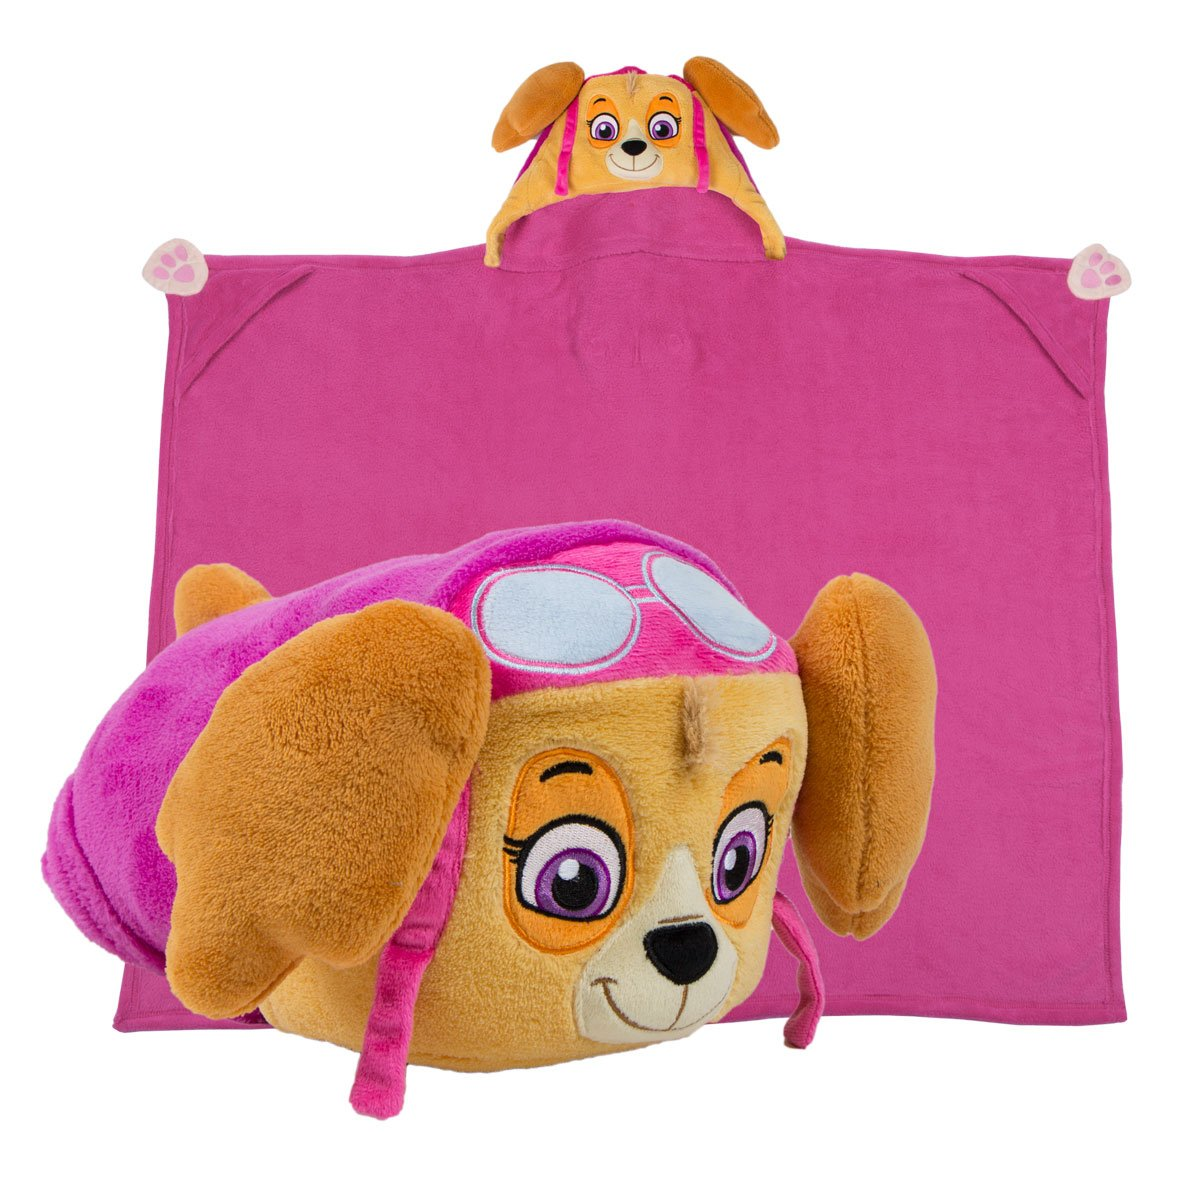 Stuffed Animal Blanket & Pillow; PAW Patrol Skye